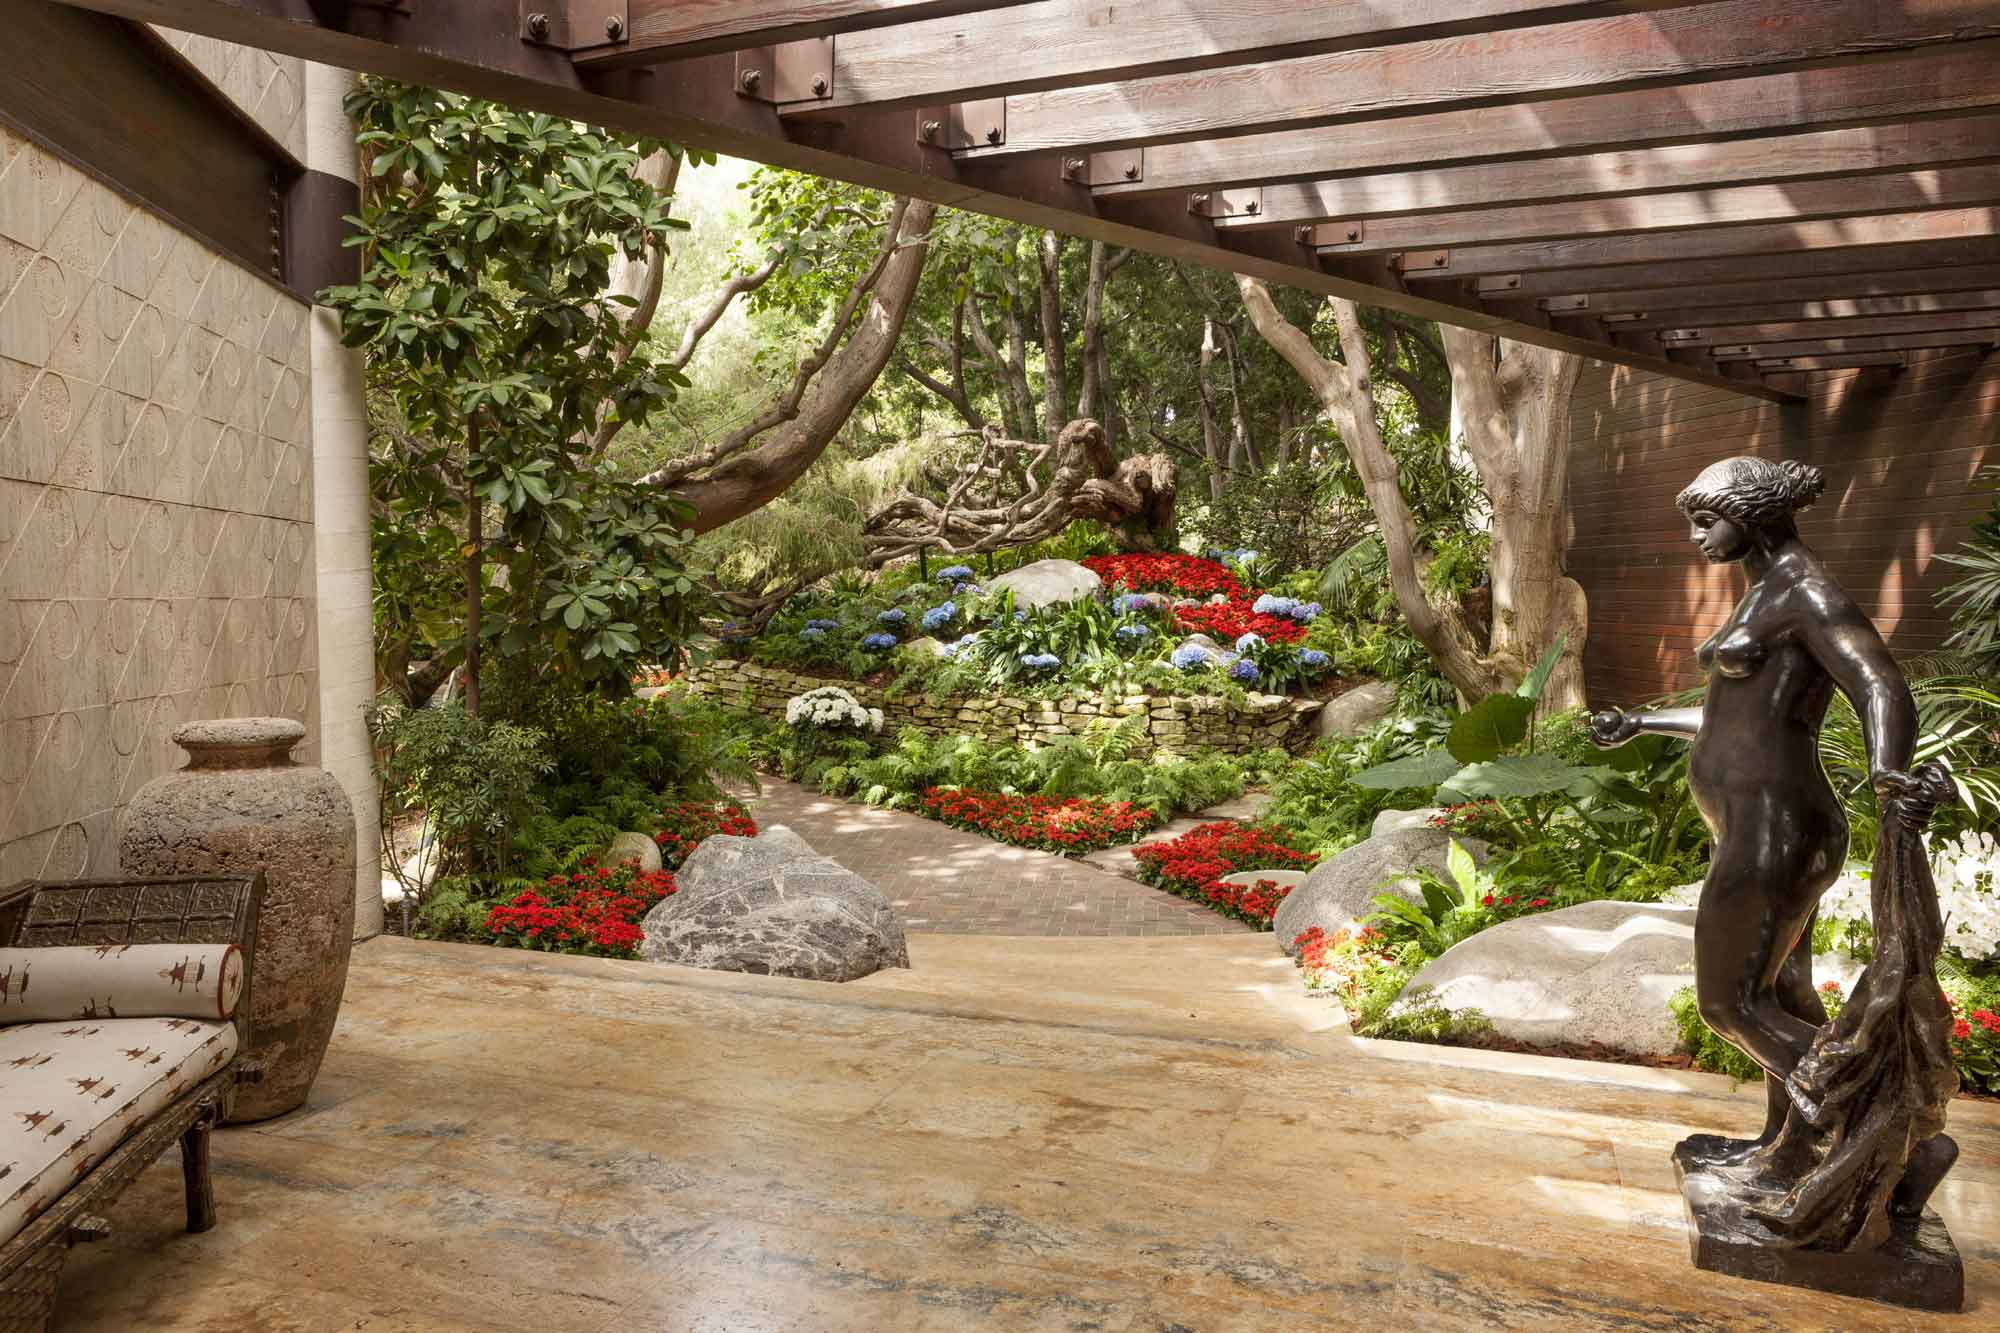 Lush landscaping outside blends seamlessly with the indoors—a hallmark of the home's design.